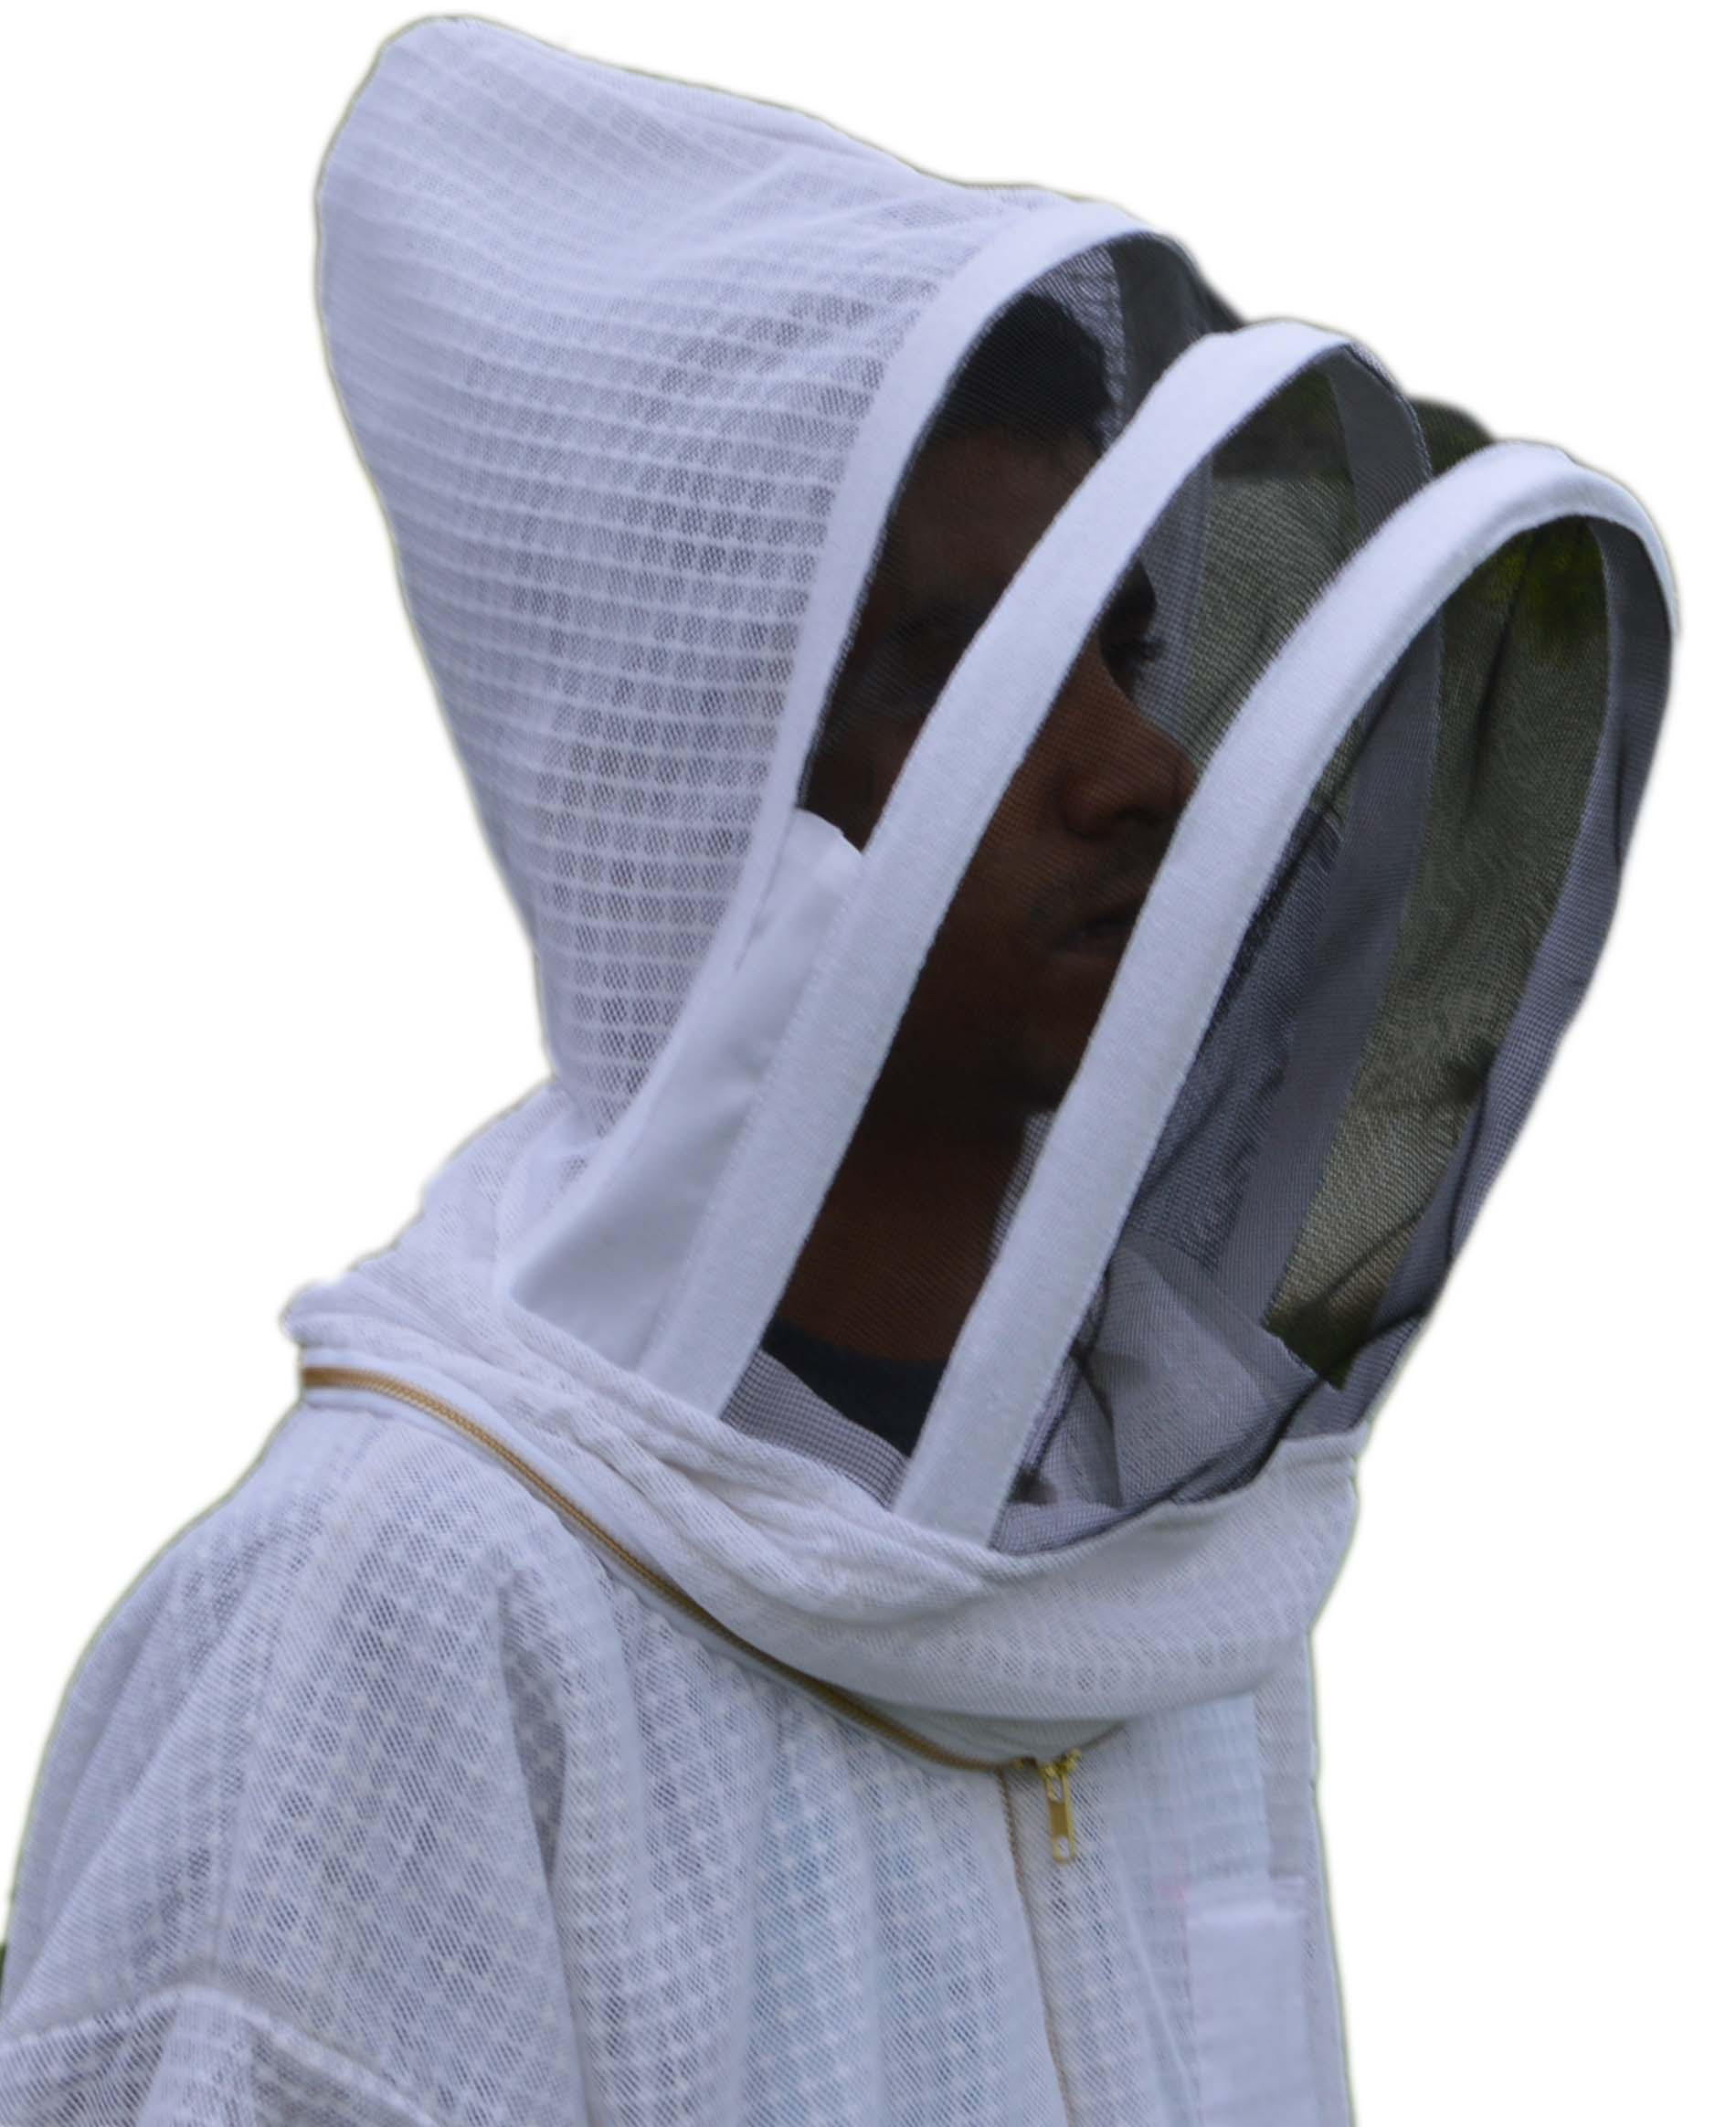 Ultra Ventilated Bee Suit Body Friendly On Sale Free